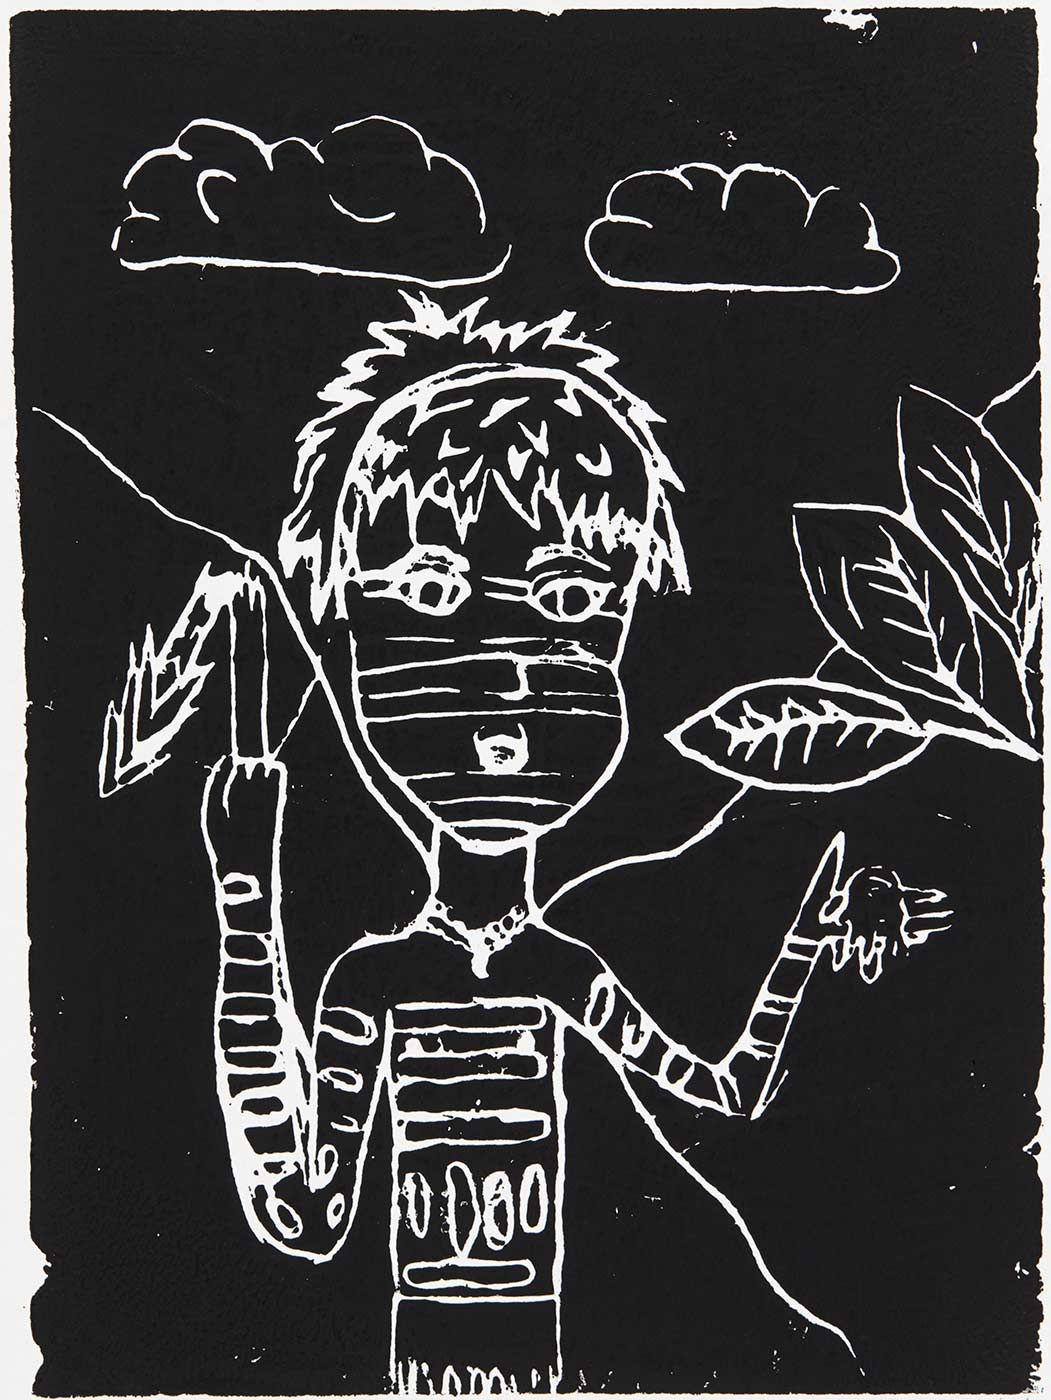 A child's artwork print depicting a person hunting. - click to view larger image